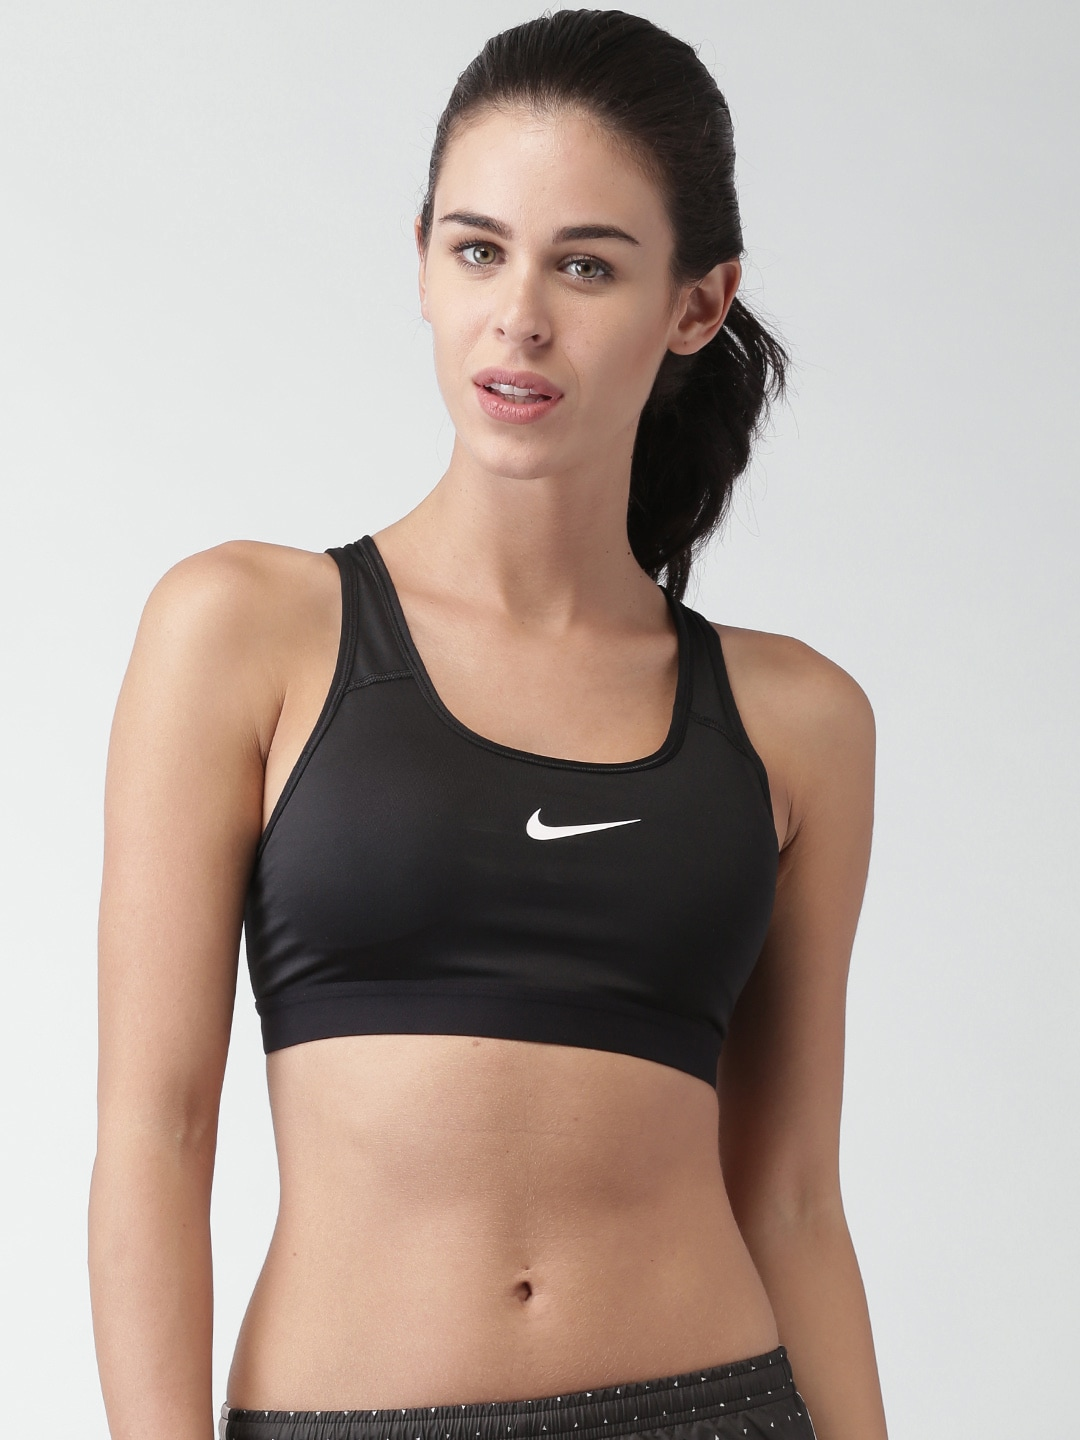 4ffebdb951 Nike - Shop for Nike Apparels Online in India